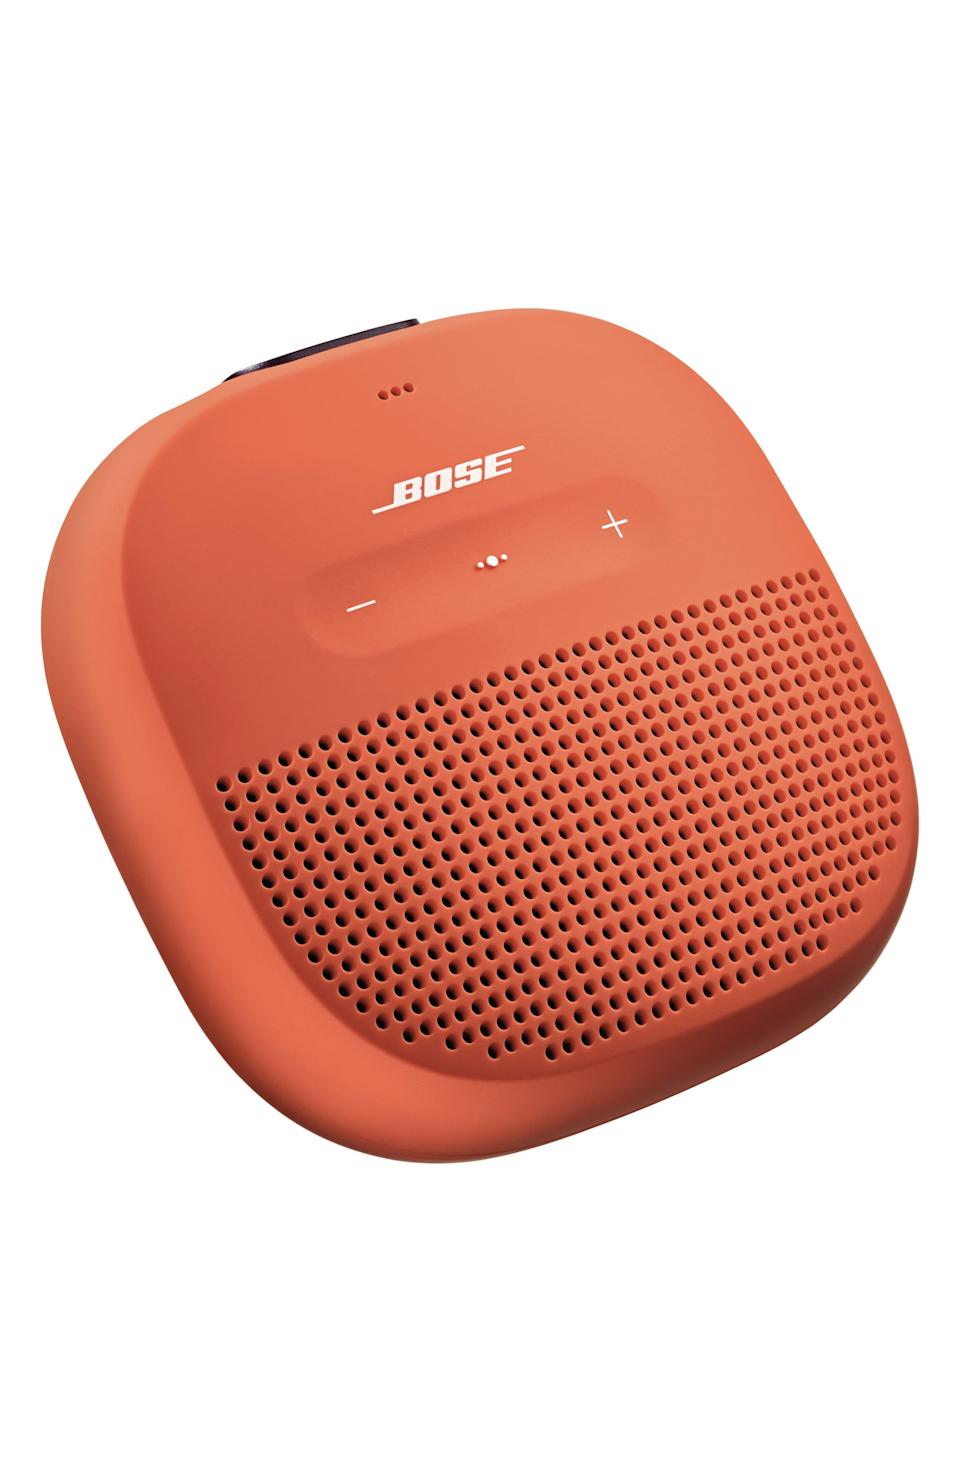 """<p><strong>BOSE</strong></p><p>nordstrom.com</p><p><strong>$99.00</strong></p><p><a href=""""https://go.redirectingat.com?id=74968X1596630&url=https%3A%2F%2Fwww.nordstrom.com%2Fs%2Fbose-soundlink-micro-bluetooth-speaker%2F4722057&sref=https%3A%2F%2Fwww.menshealth.com%2Ftechnology-gear%2Fg35184277%2Fvalentines-day-gifts-for-men%2F"""" rel=""""nofollow noopener"""" target=""""_blank"""" data-ylk=""""slk:BUY IT HERE"""" class=""""link rapid-noclick-resp"""">BUY IT HERE</a></p><p>This bluetooth speaker from Bose is an absolute essential if your boyfriend is a music lover. It's a high-quality gift he'll use daily.</p>"""